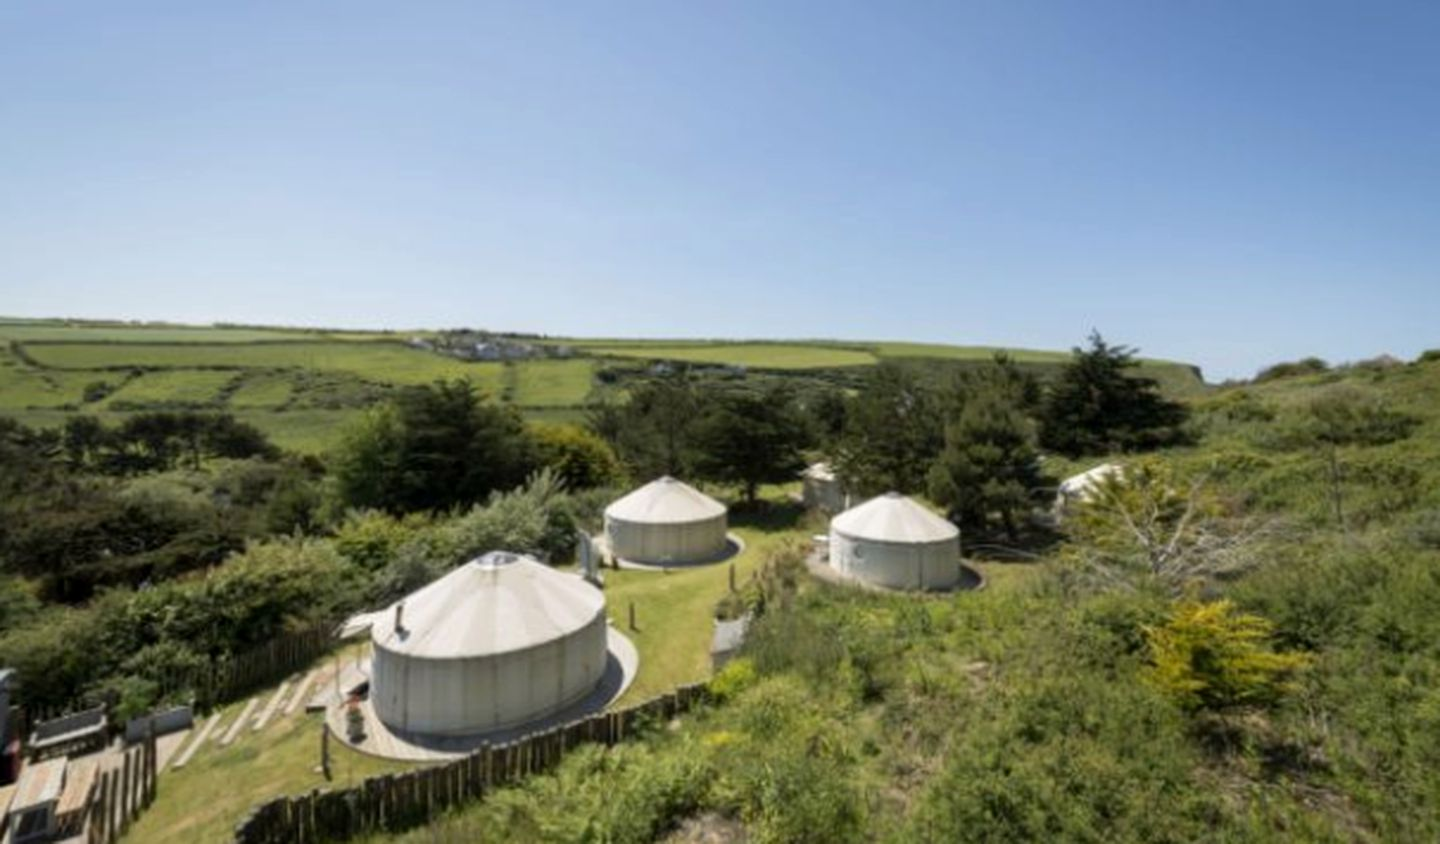 Yurts (Mawgan Porth, England, United Kingdom)